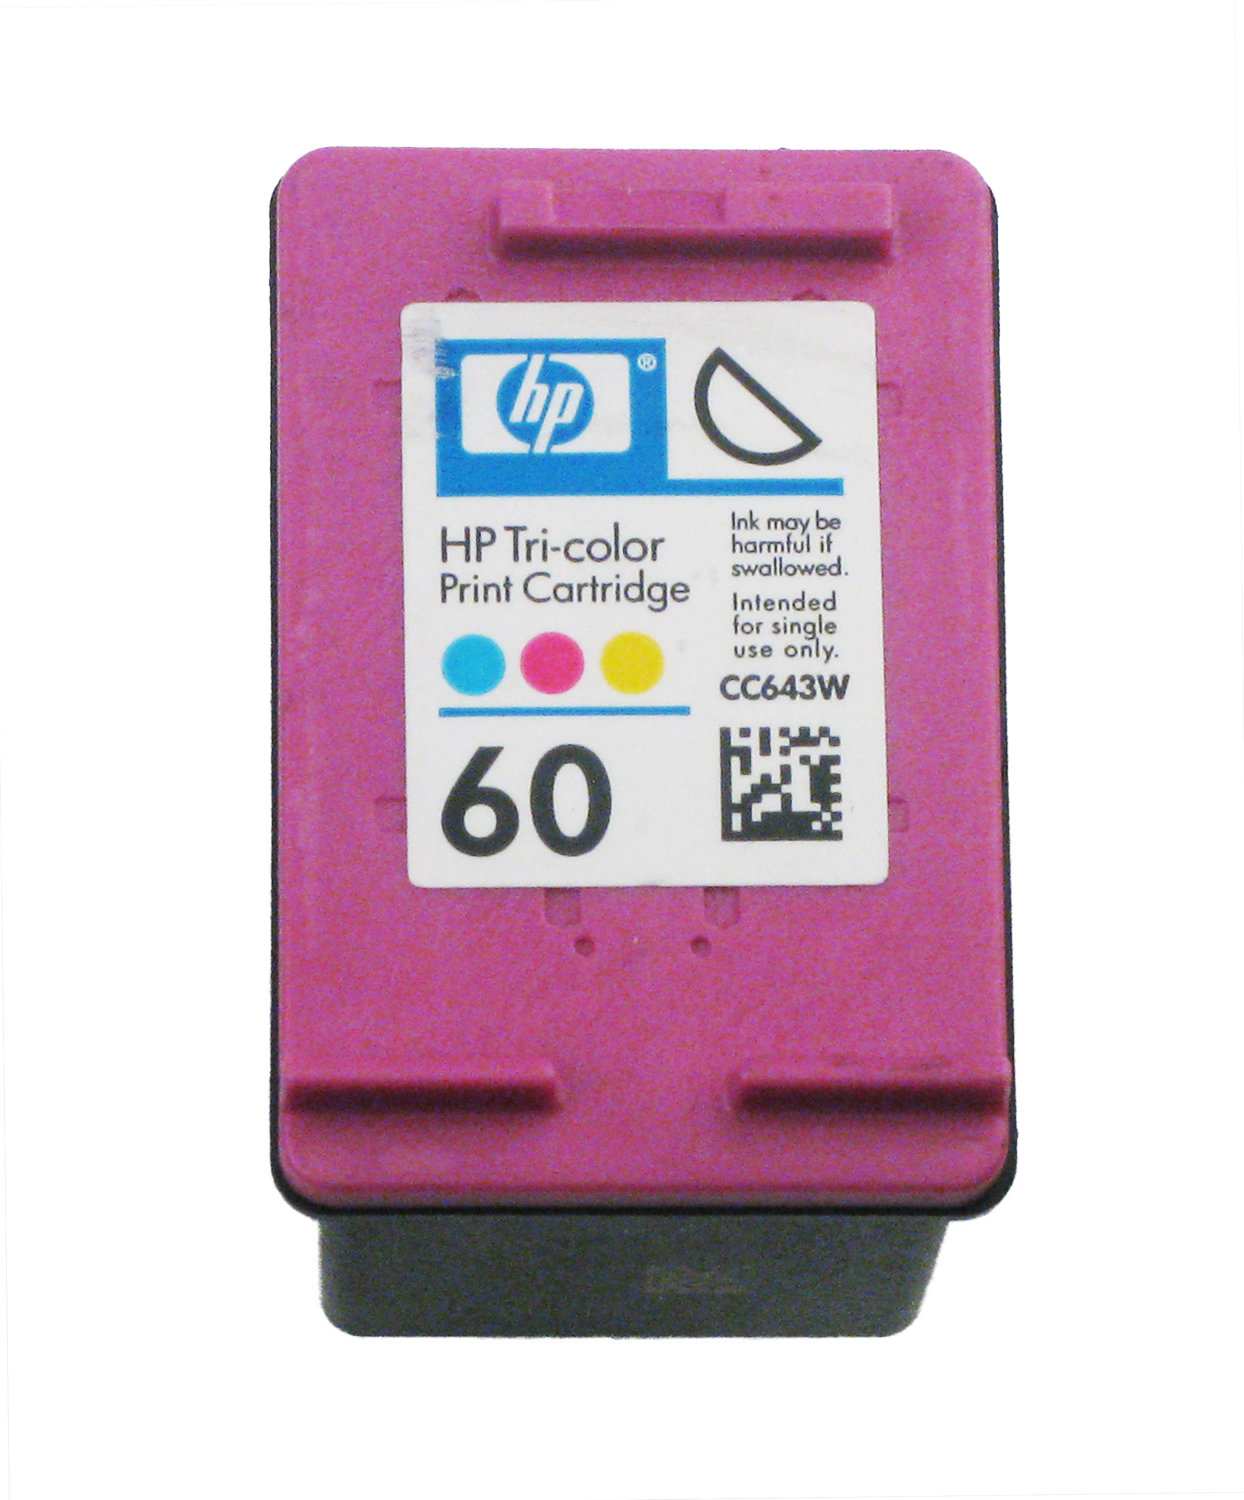 Original HP 60 Color Ink Cartridge for HP Envy 120 114 Deskjet F4480